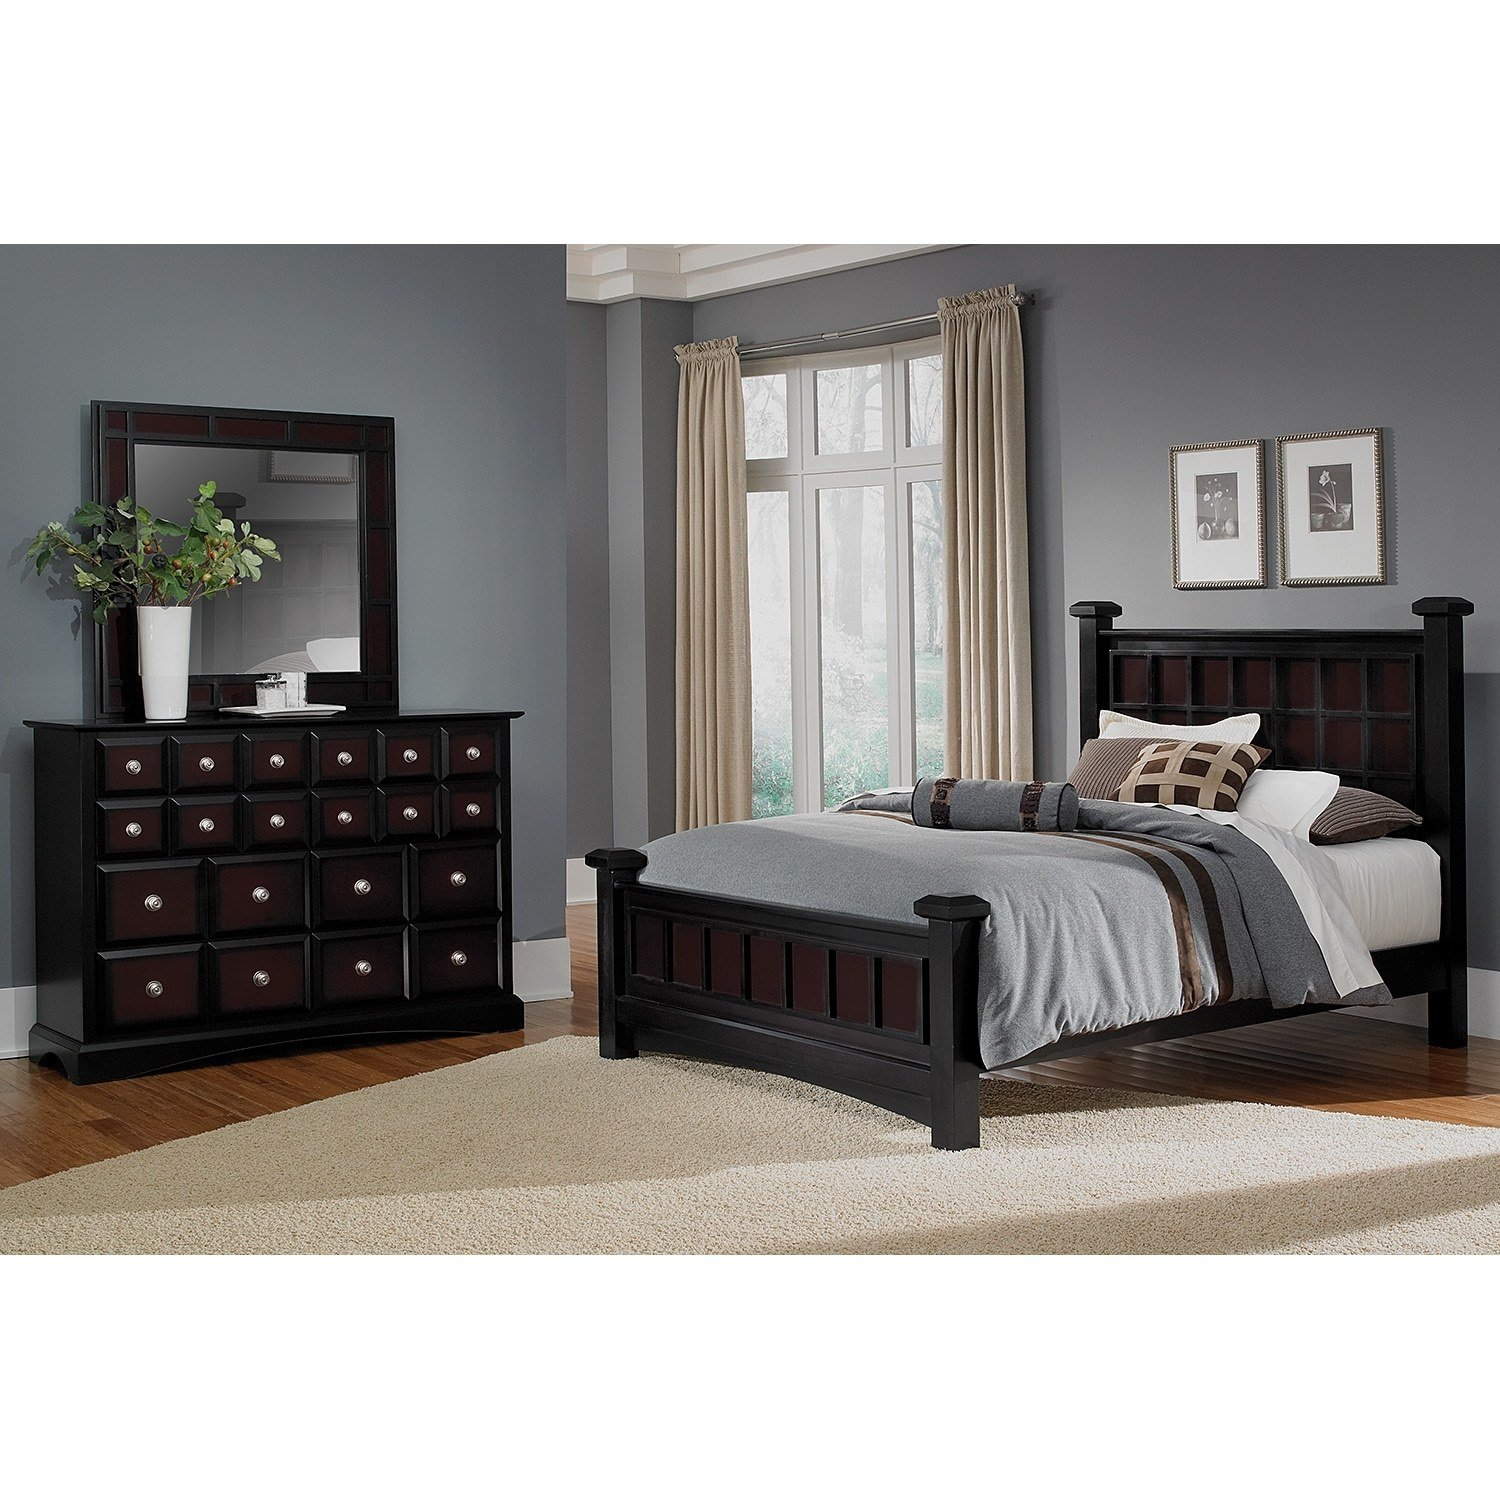 Best Winchester 5 Pc King Bedroom Value City Furniture With Pictures